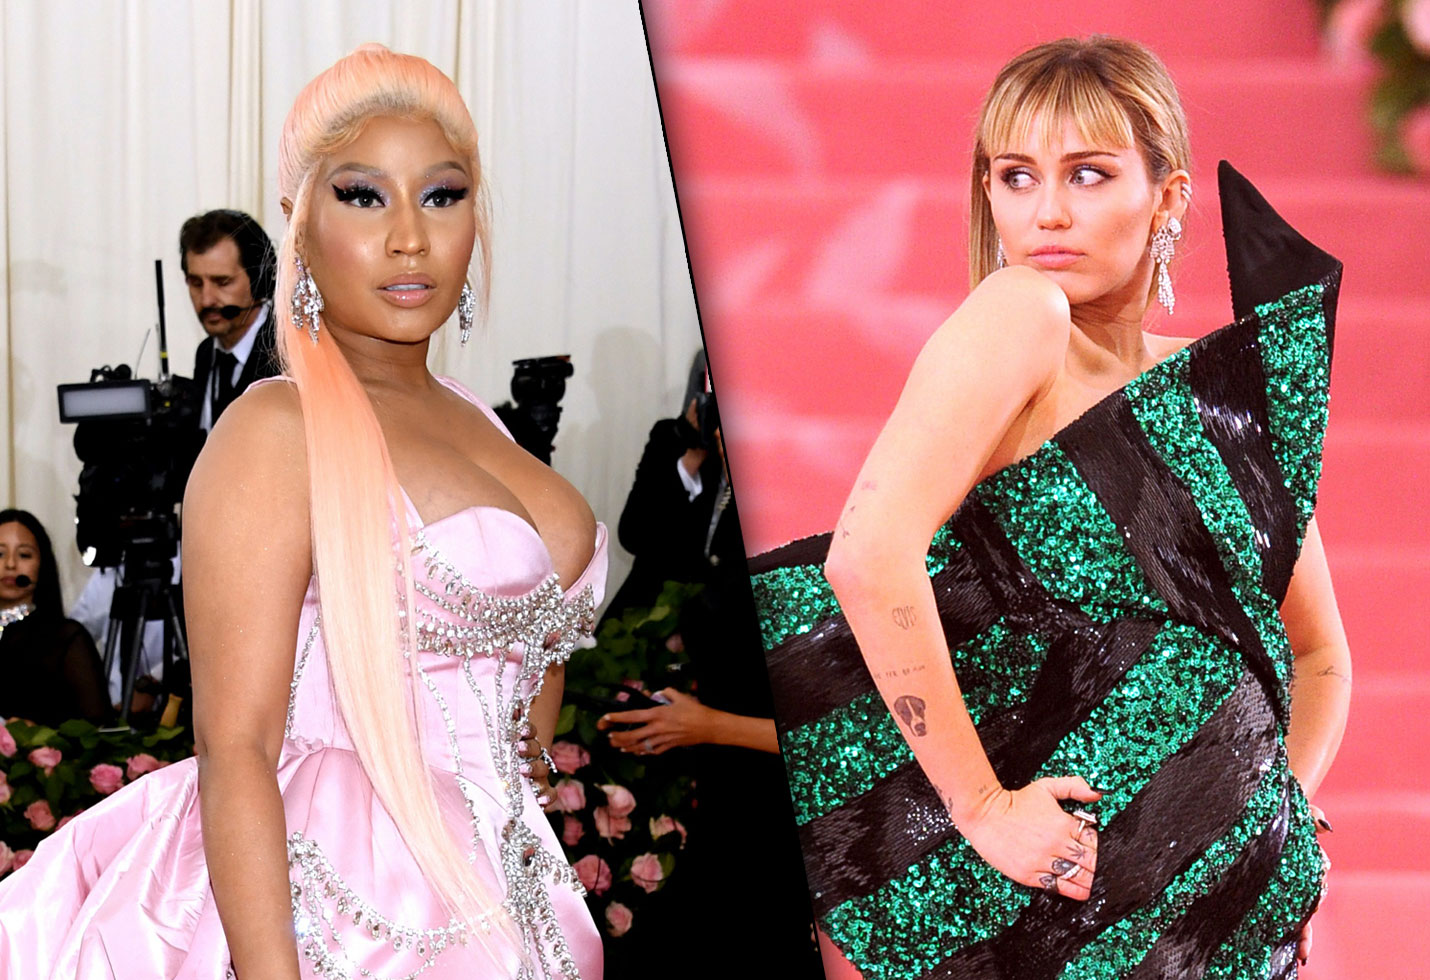 Miley cyrus nicki minaj feud cardi b new song